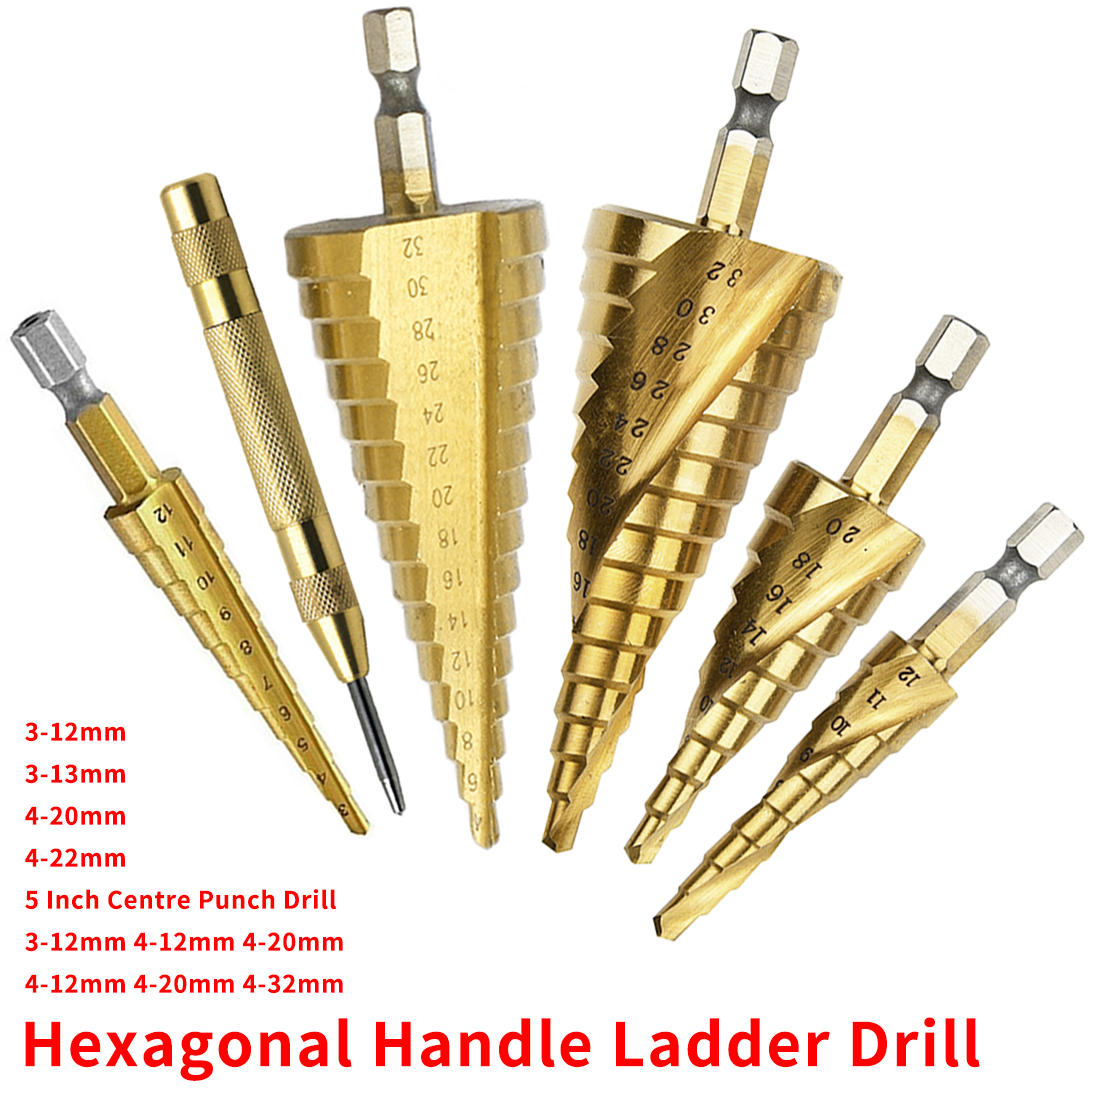 Titanium Step Cone Drill Bit 3-12mm/13mm 4-12/20/32mm Hole Cutter HSS 4241 For Sheet Metalworking Wood Drilling Power Tool